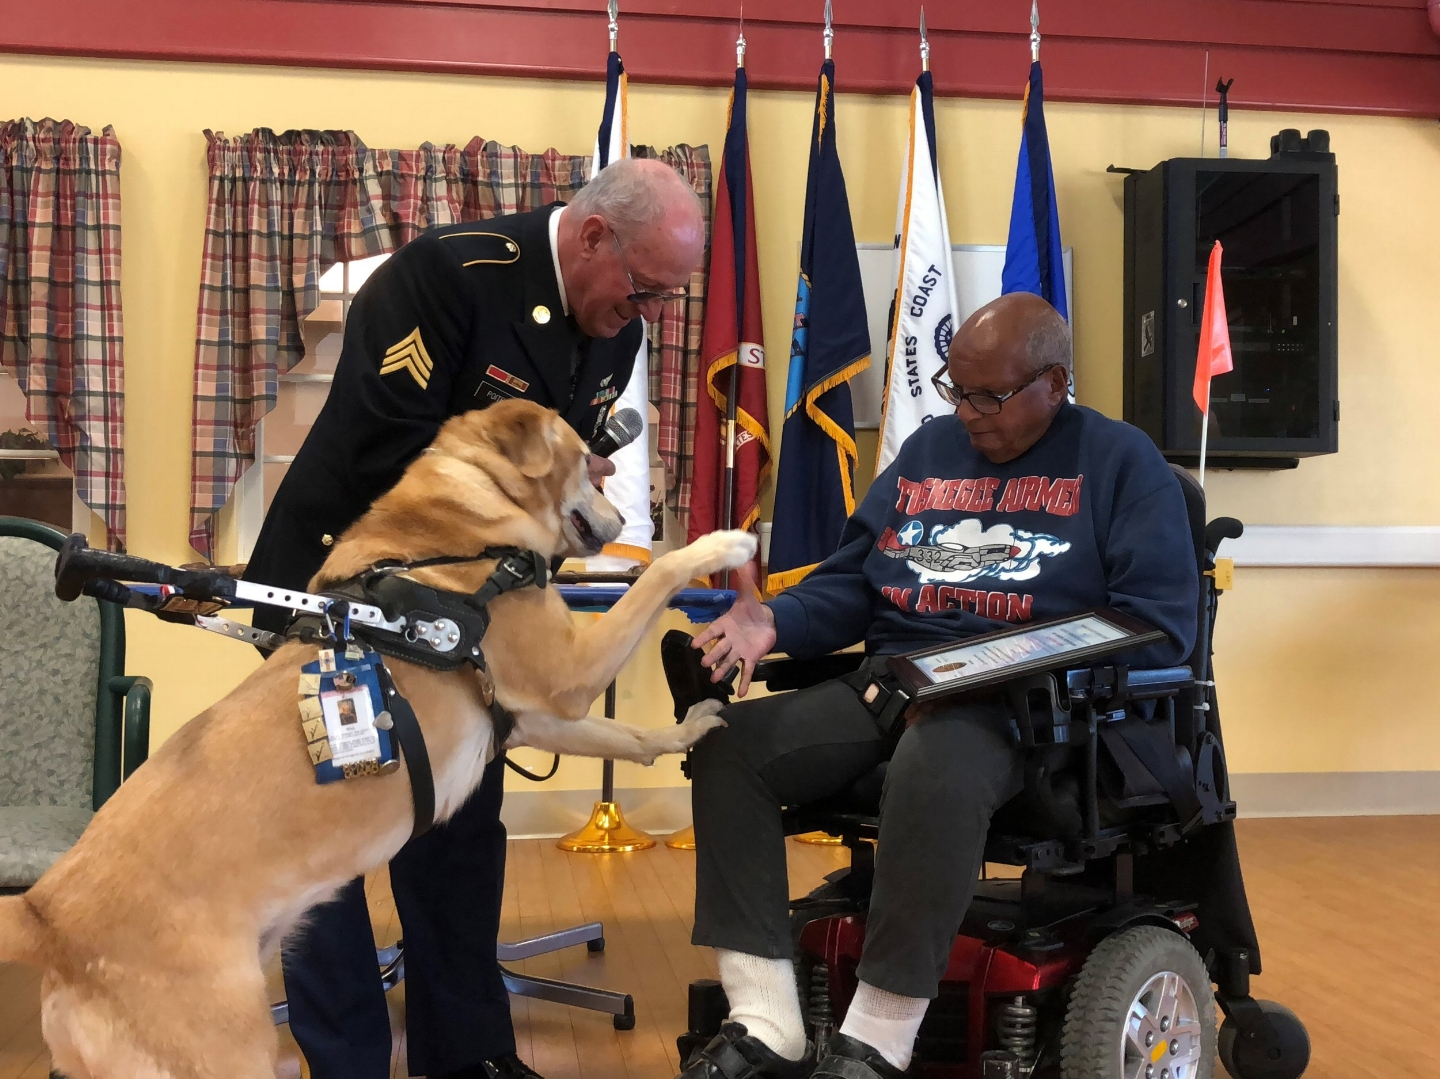 George receives a Certificate of Appreciation from SGT Poitras, and Bliss (the dog is a Silver Star recipient).